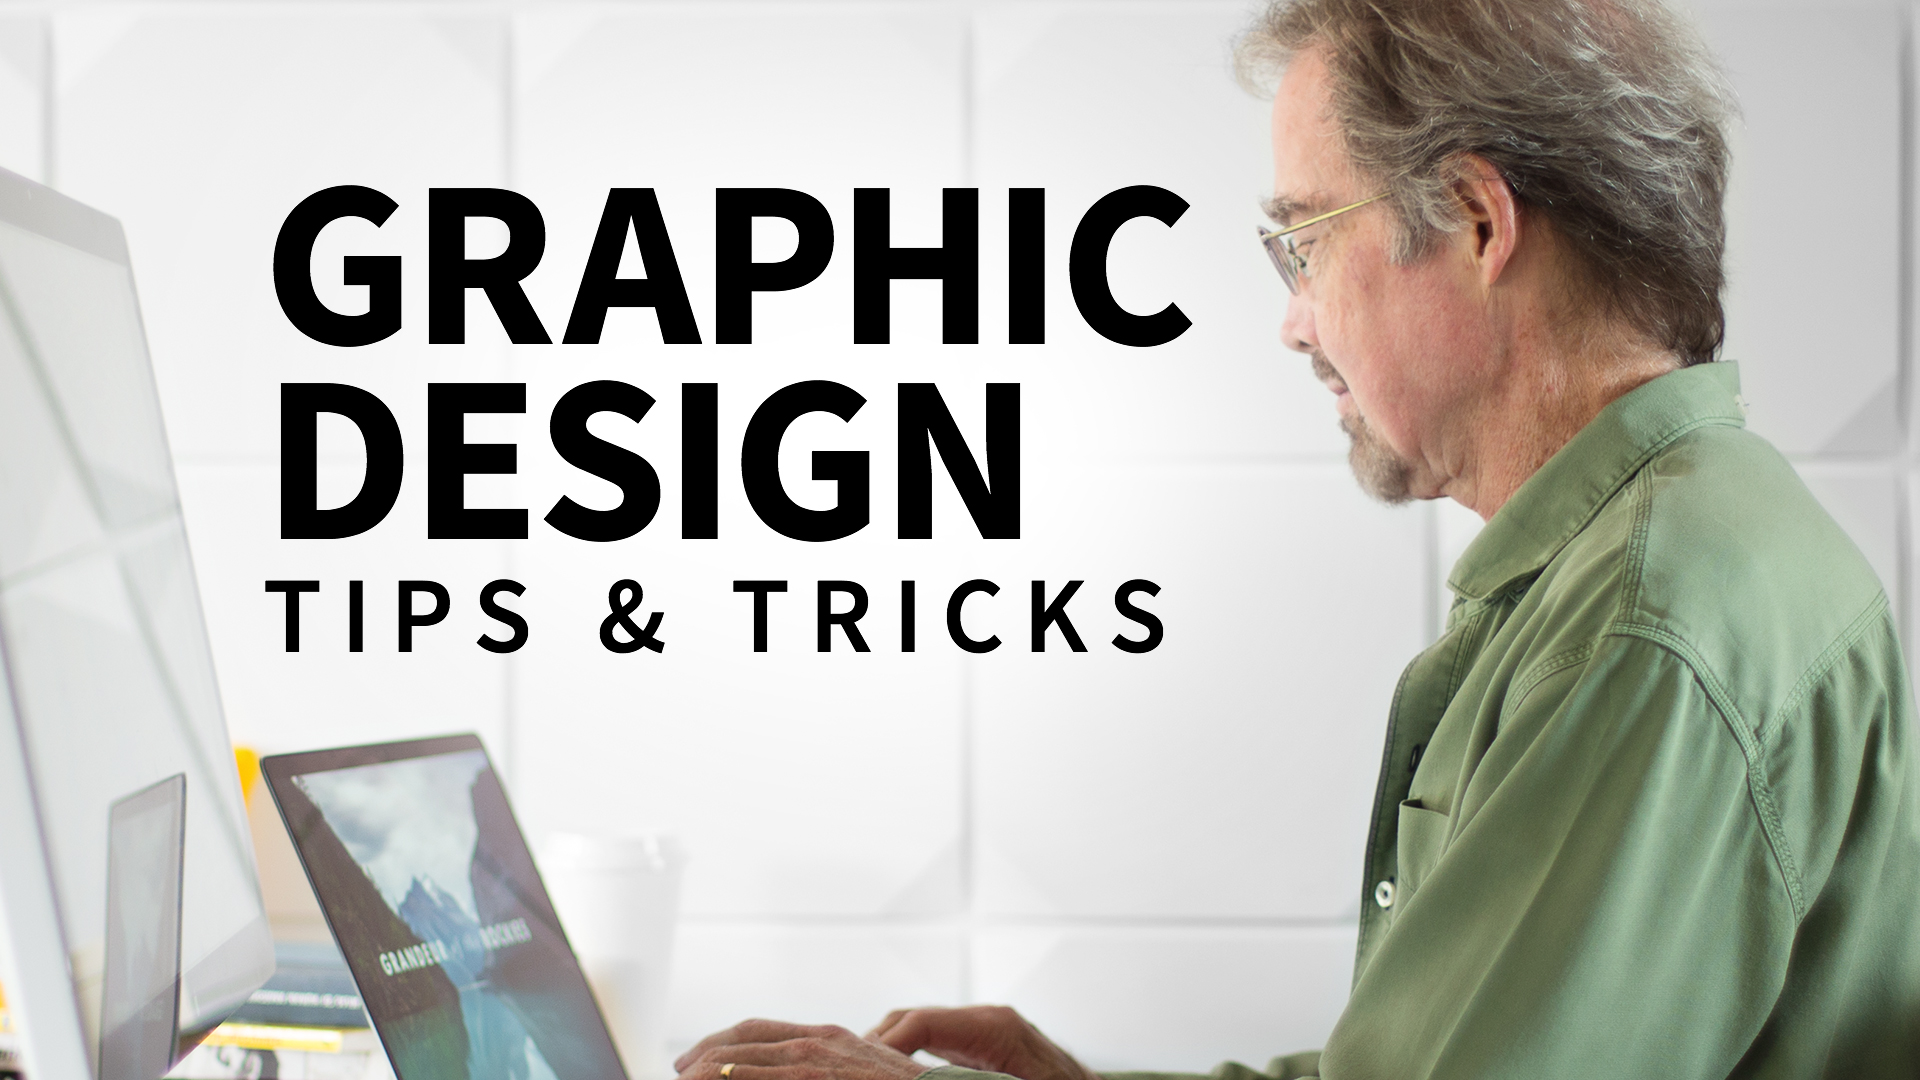 X men coloring online games - Graphic Design Tips Tricks Weekly